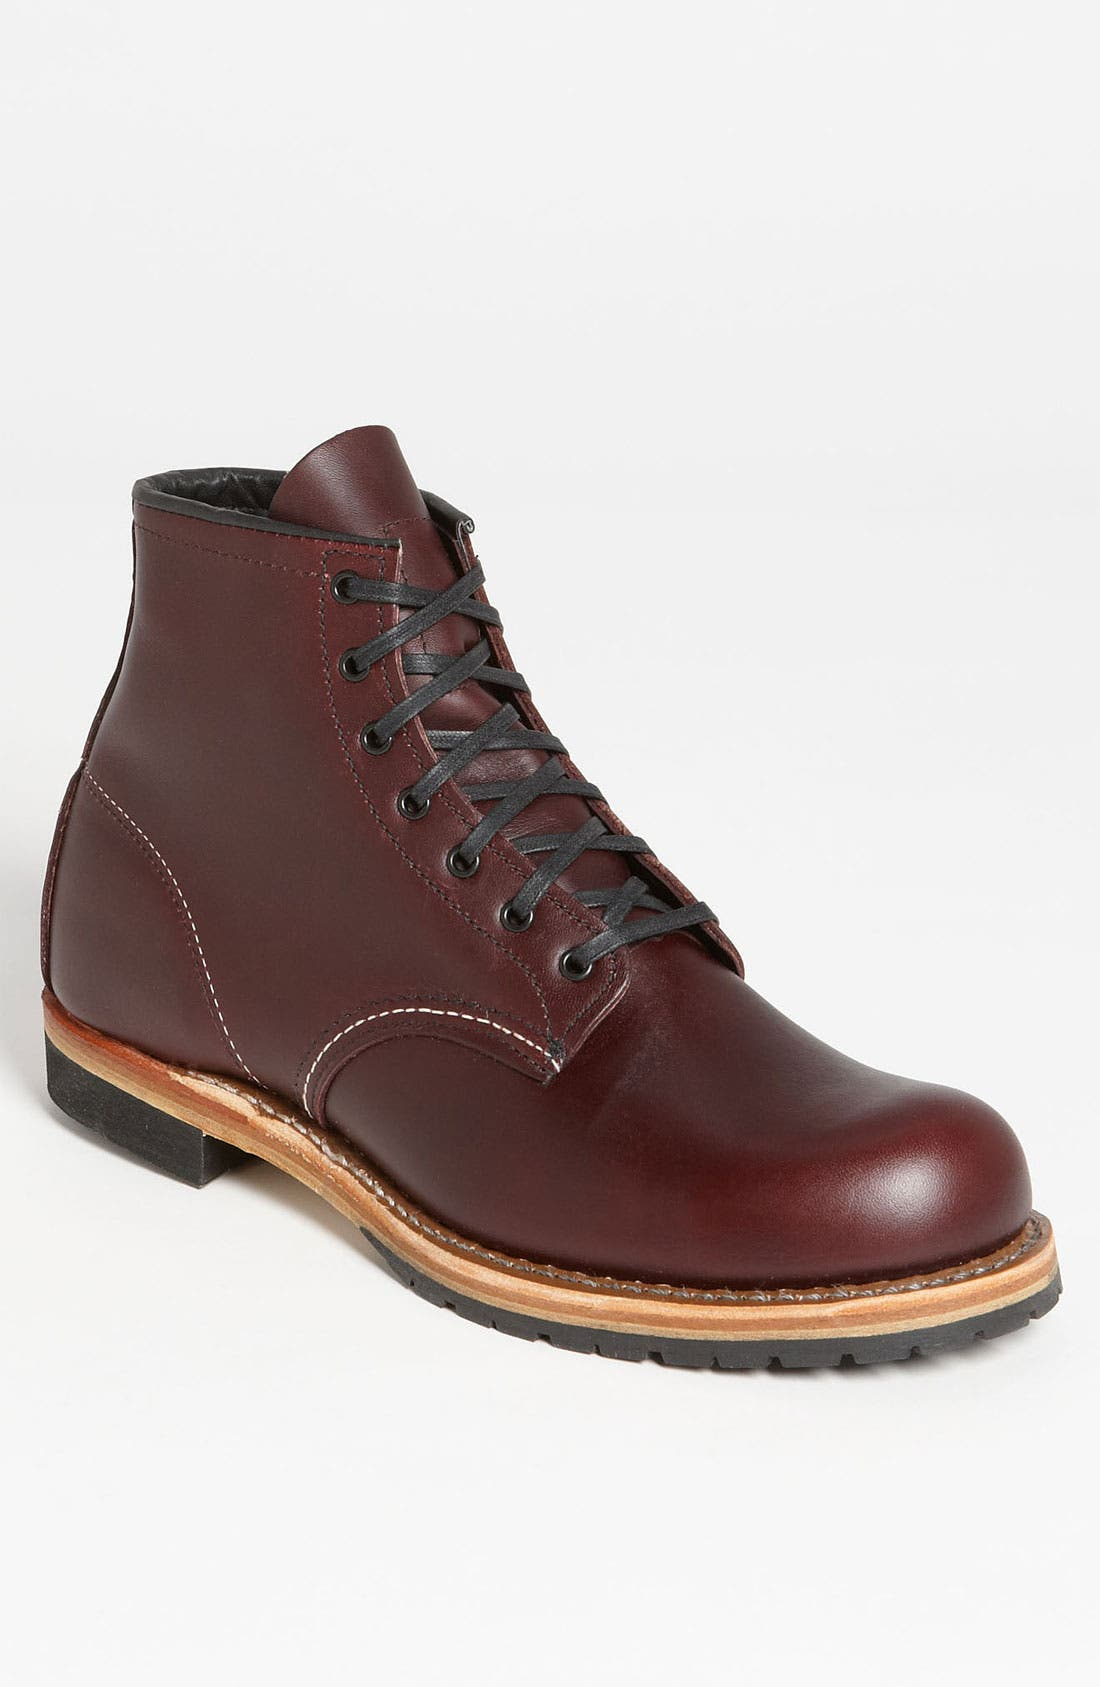 Alternate Image 1 Selected - Red Wing 'Beckman' Round Toe Boot (Online Exclusive)